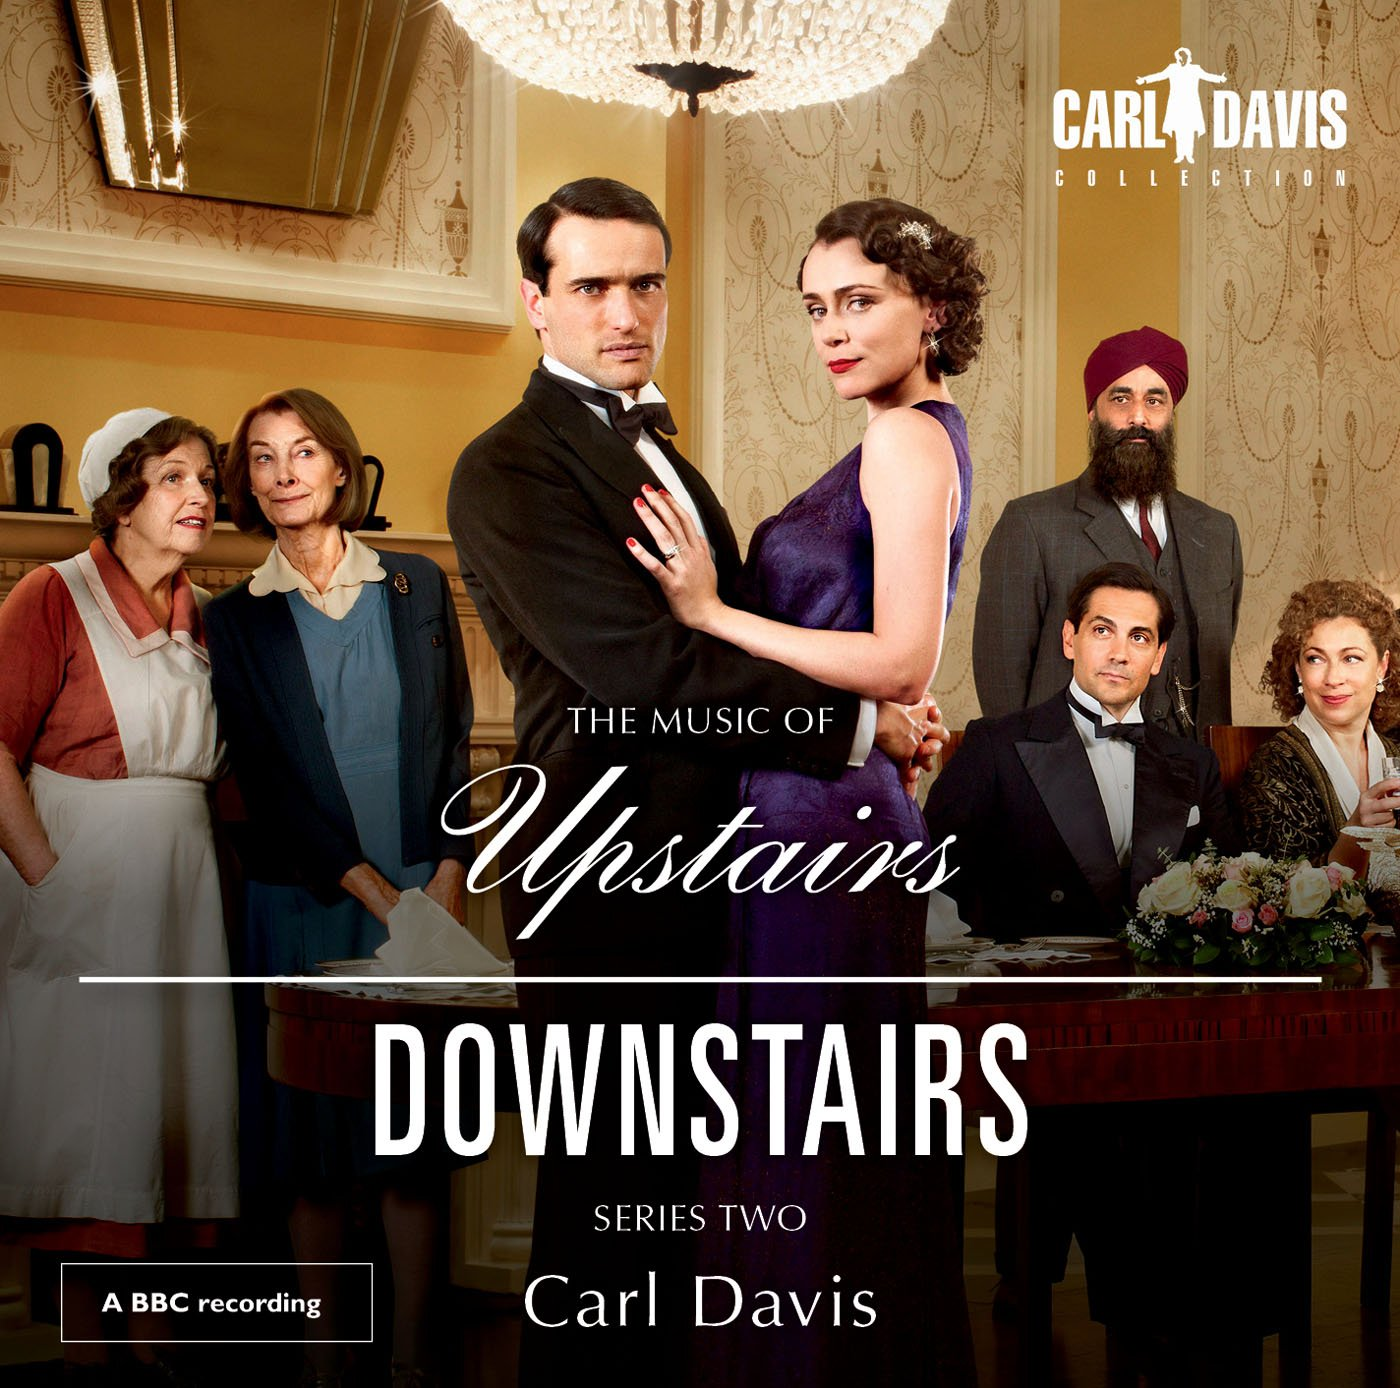 The Music of Upstairs Downstairs: Series 2